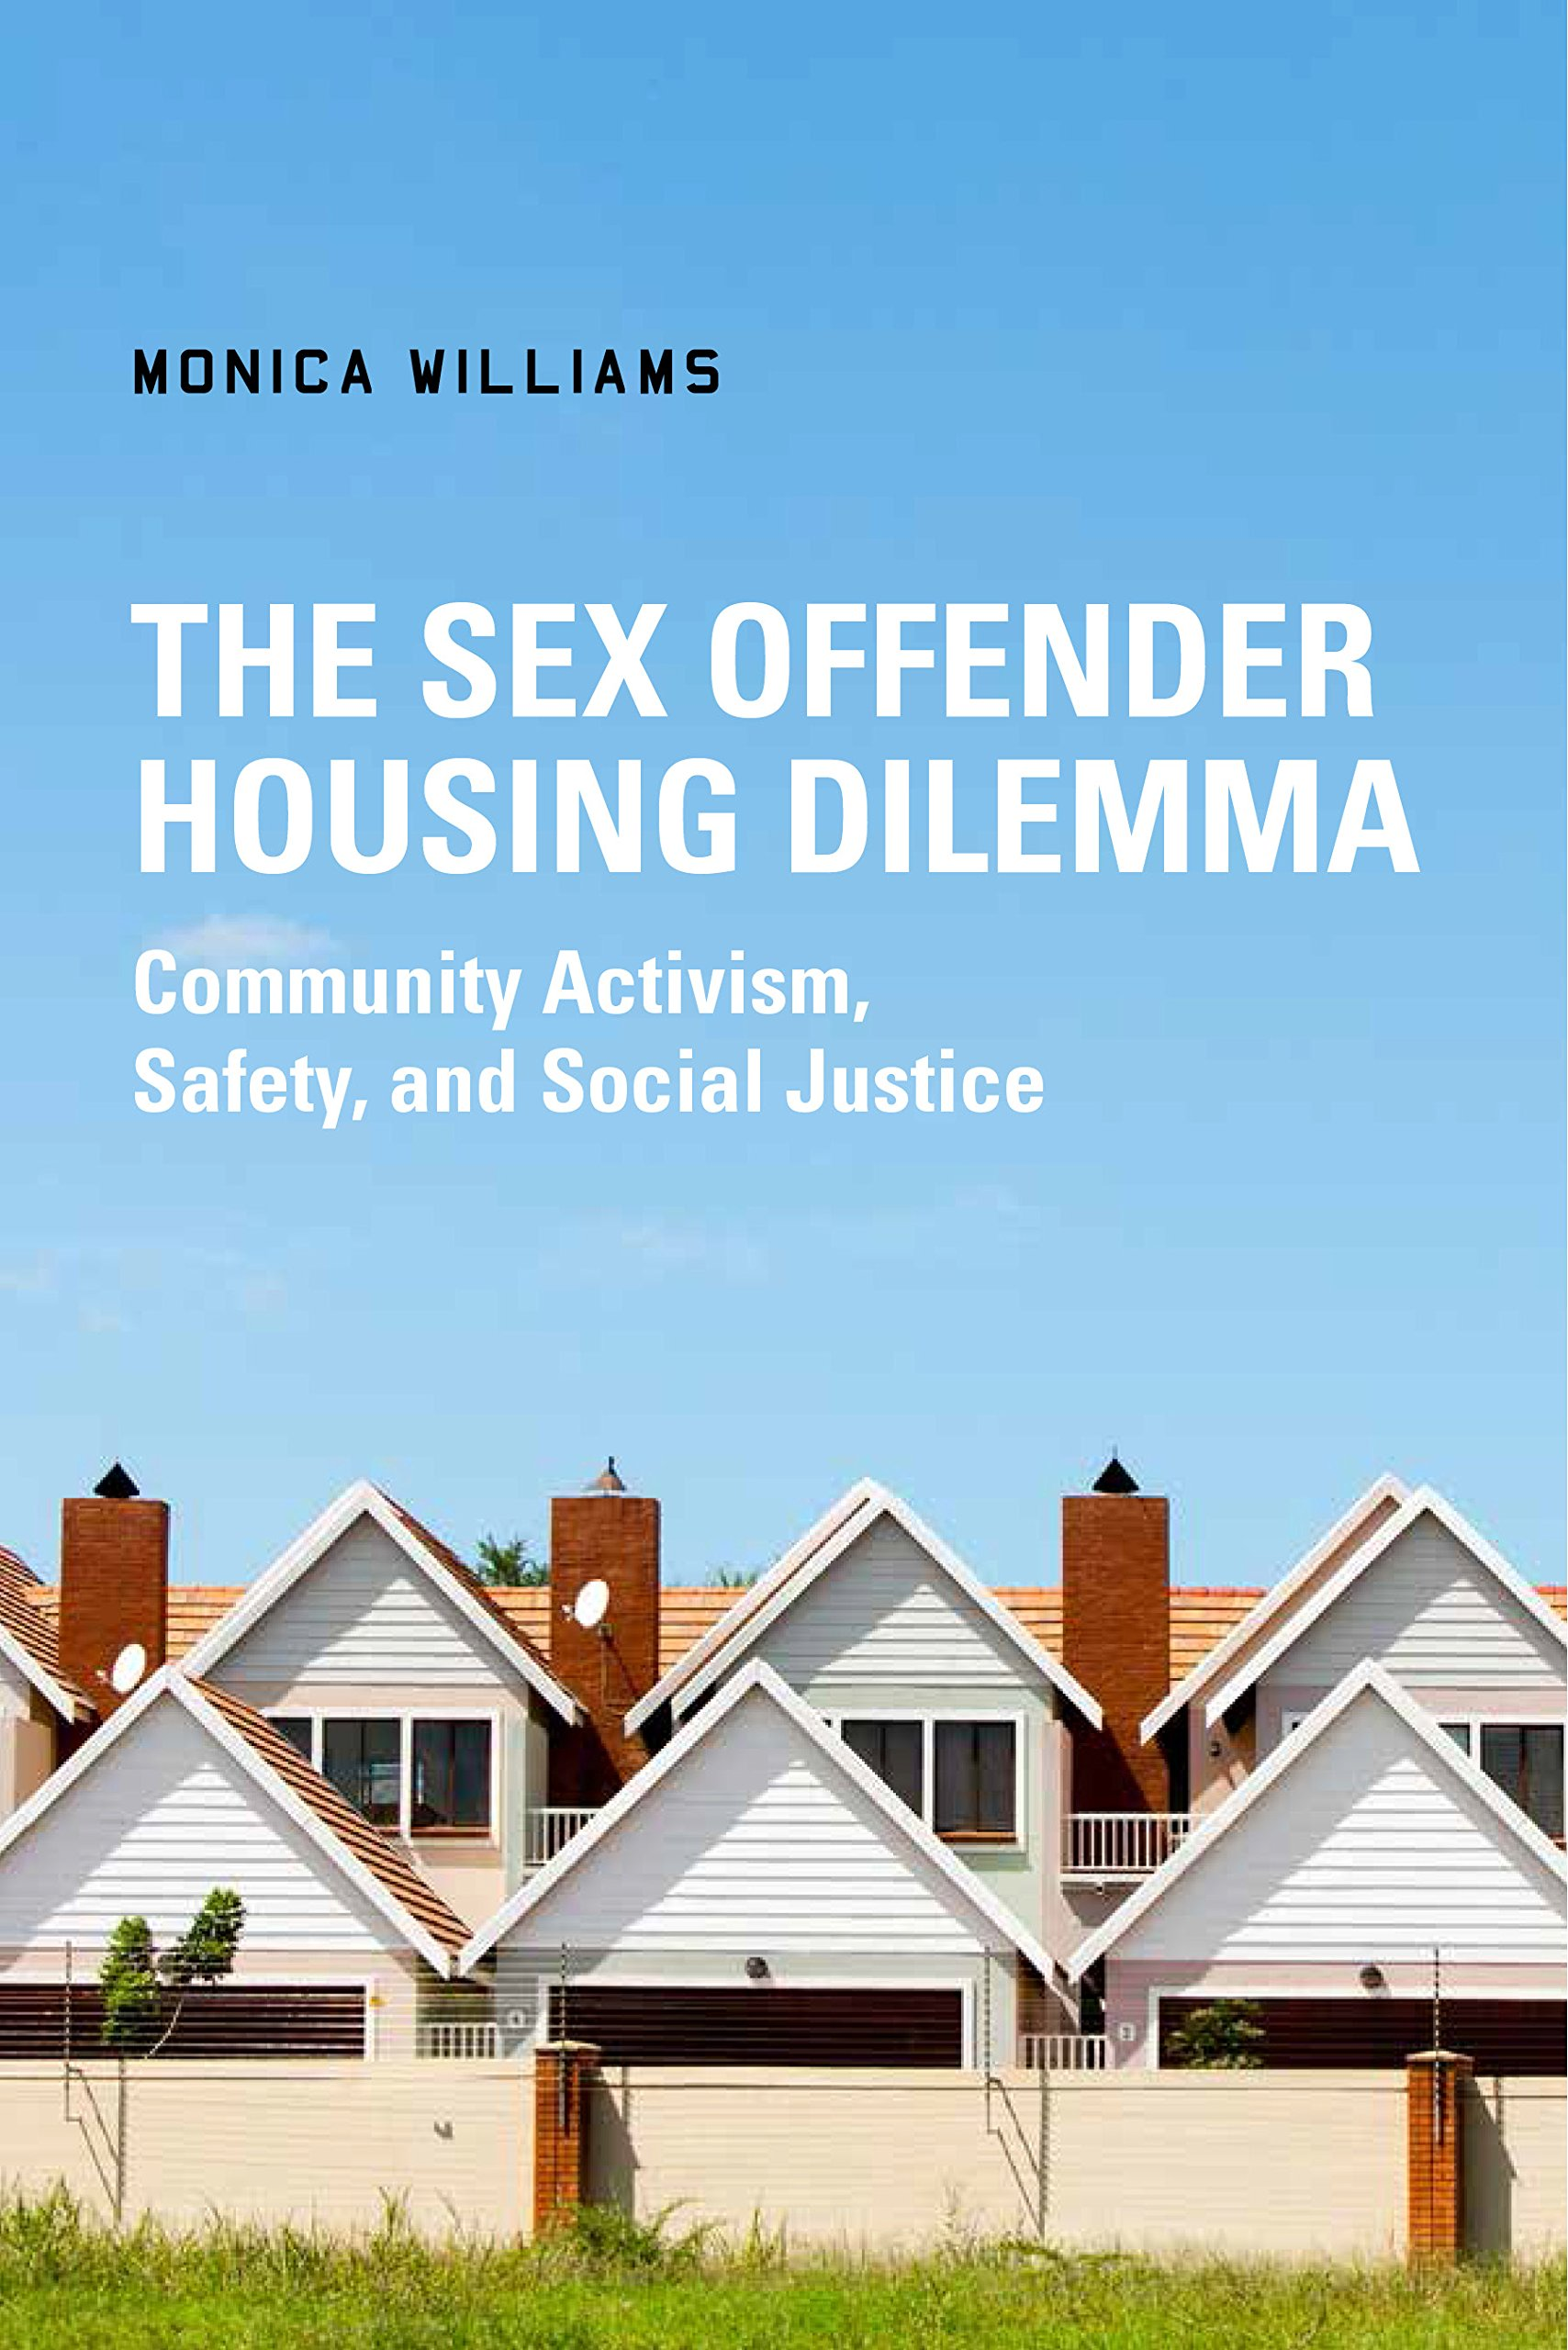 Residential placement for sex offenders